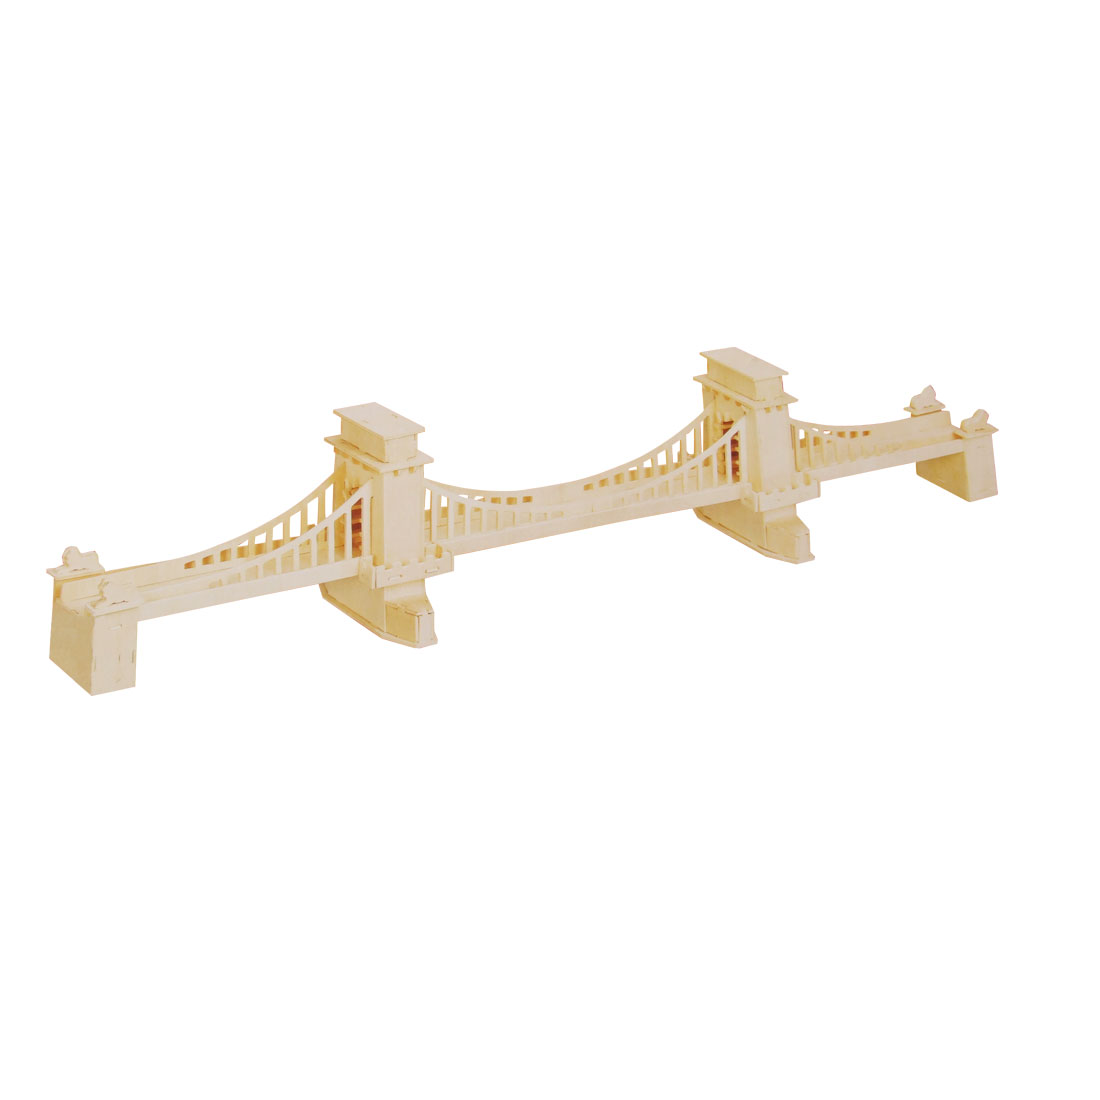 Brooklyn Bridge Design Wooden Woodcraft Construction Kit Puzzle Toy